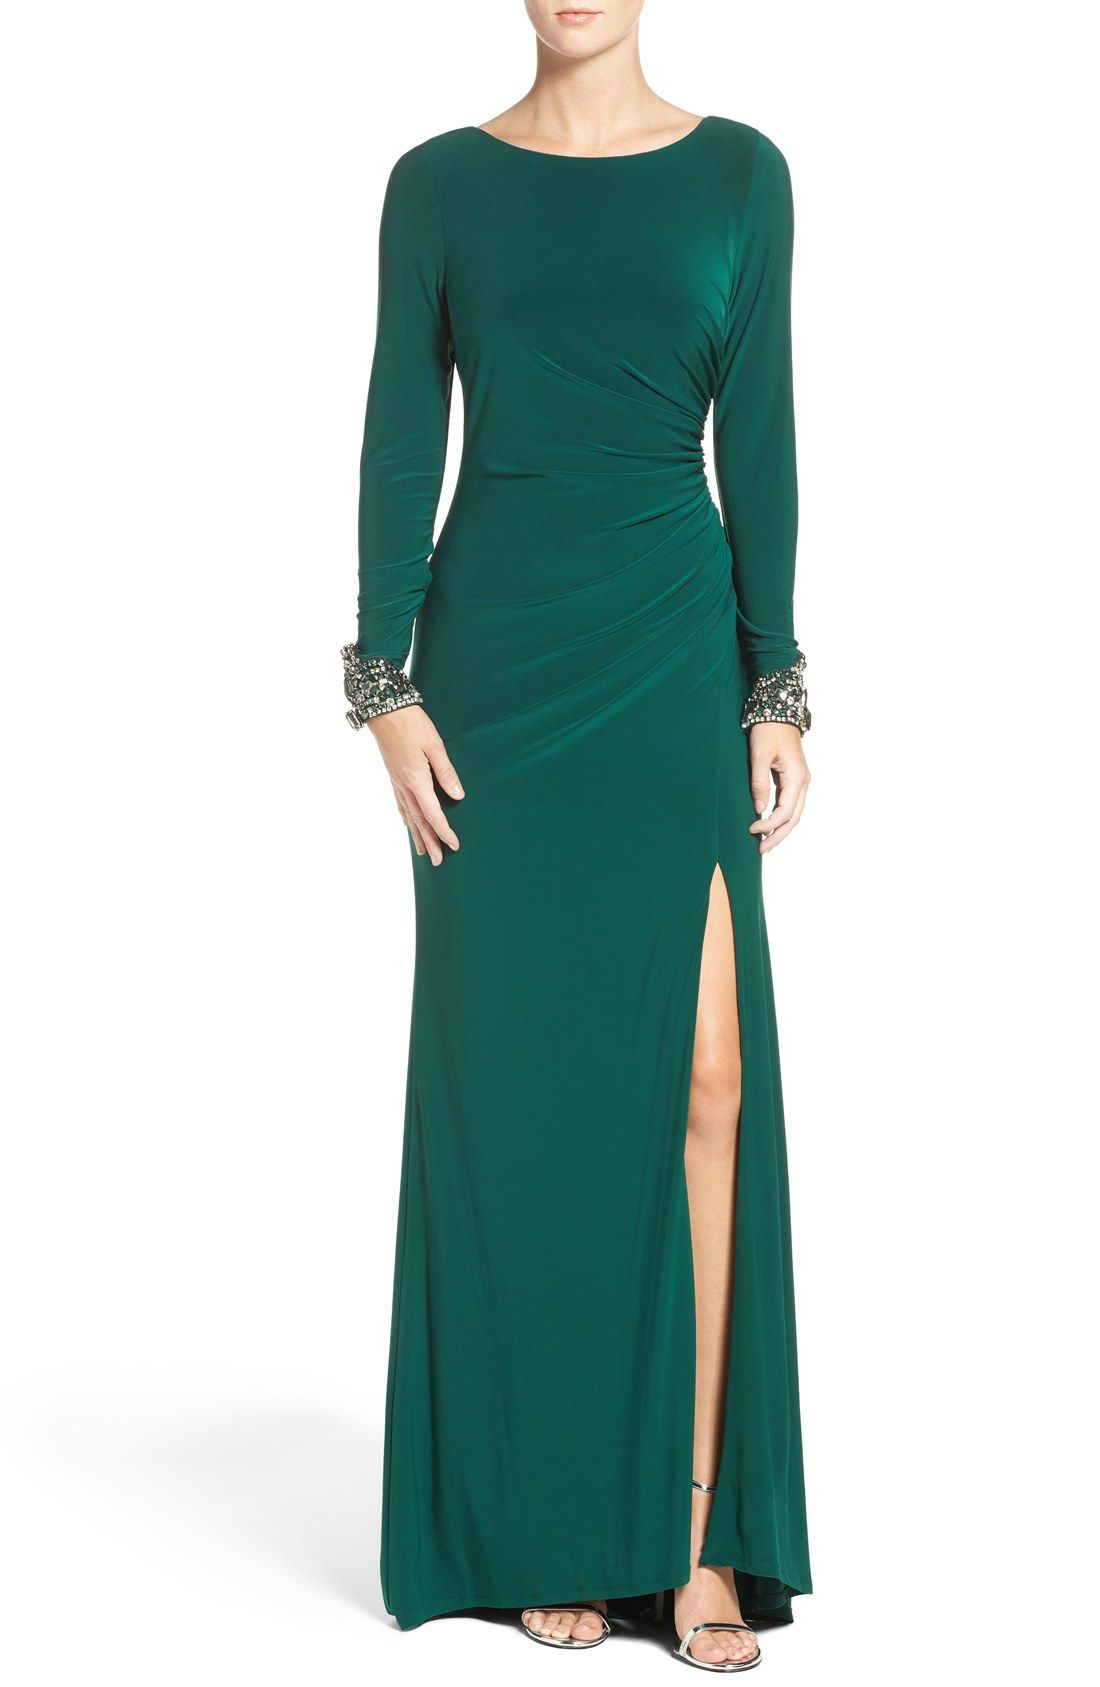 Fall Mother Of The Bride Dresses Mother Of The Bride Dresses For Autumn Weddings For Mothers Of The Bride And Mothers Of T Evening Gowns Elegant Dresses Gowns